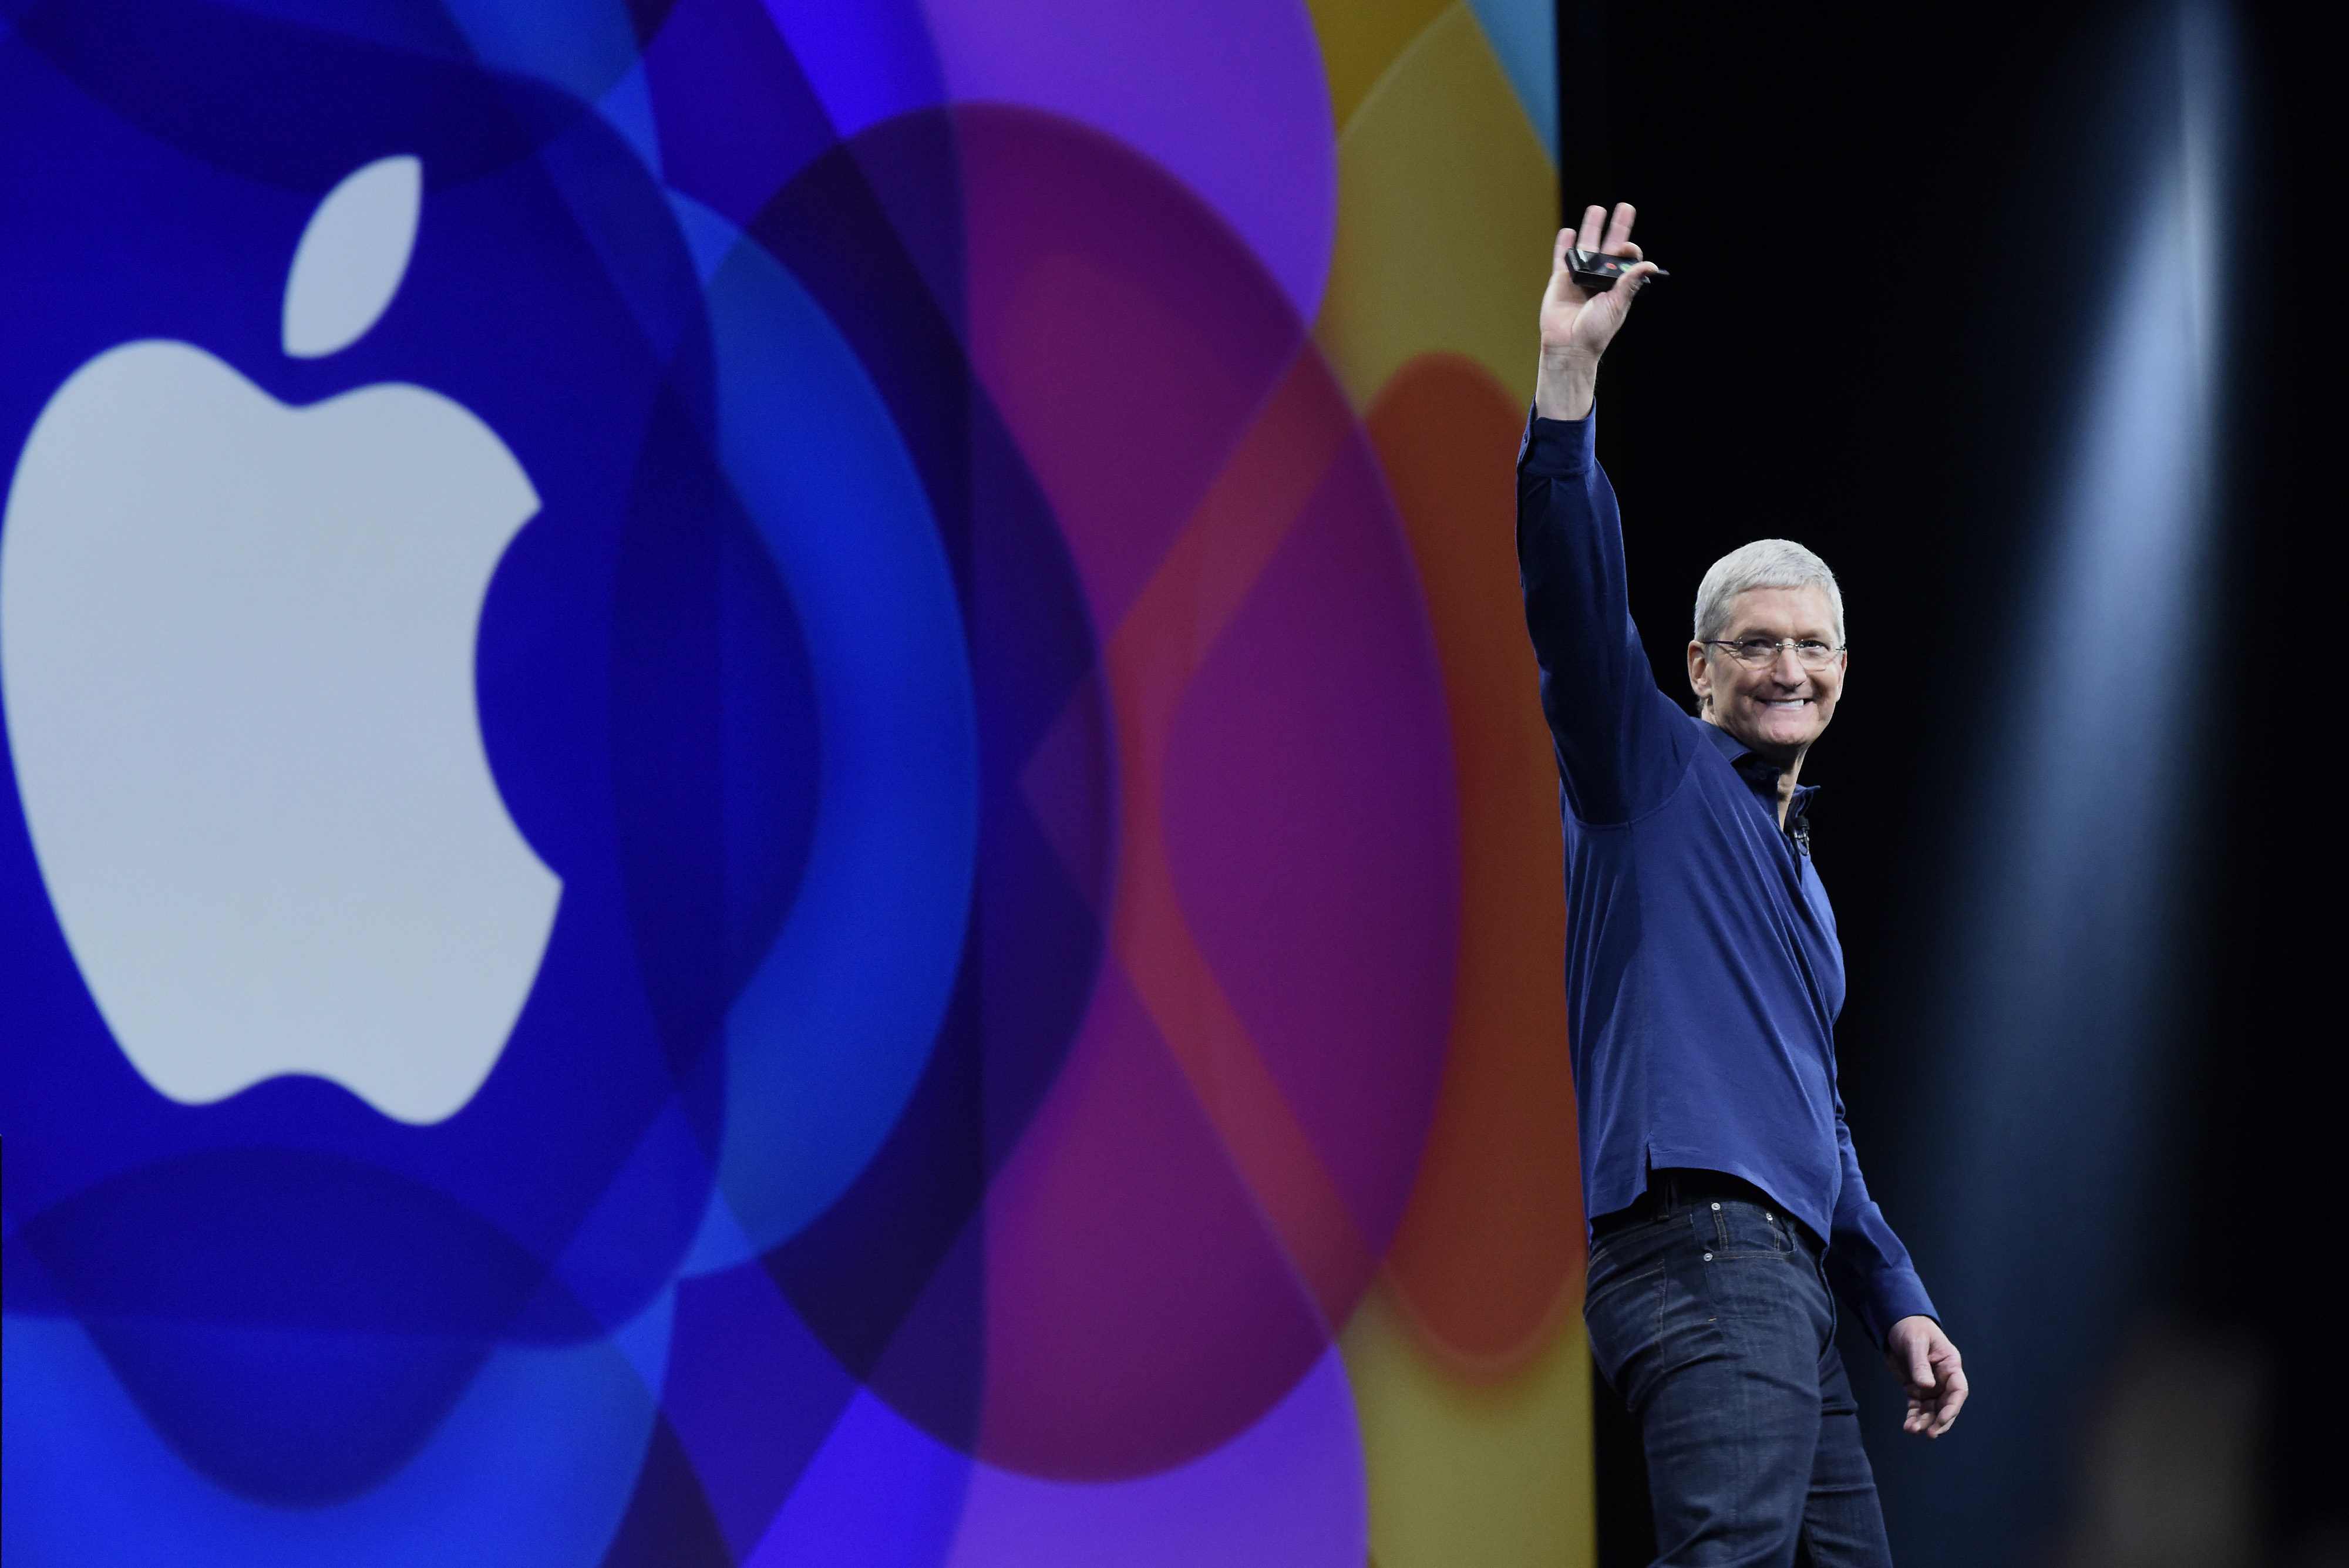 Apple repurchased $36 billion shares in the company's latest fiscal year.